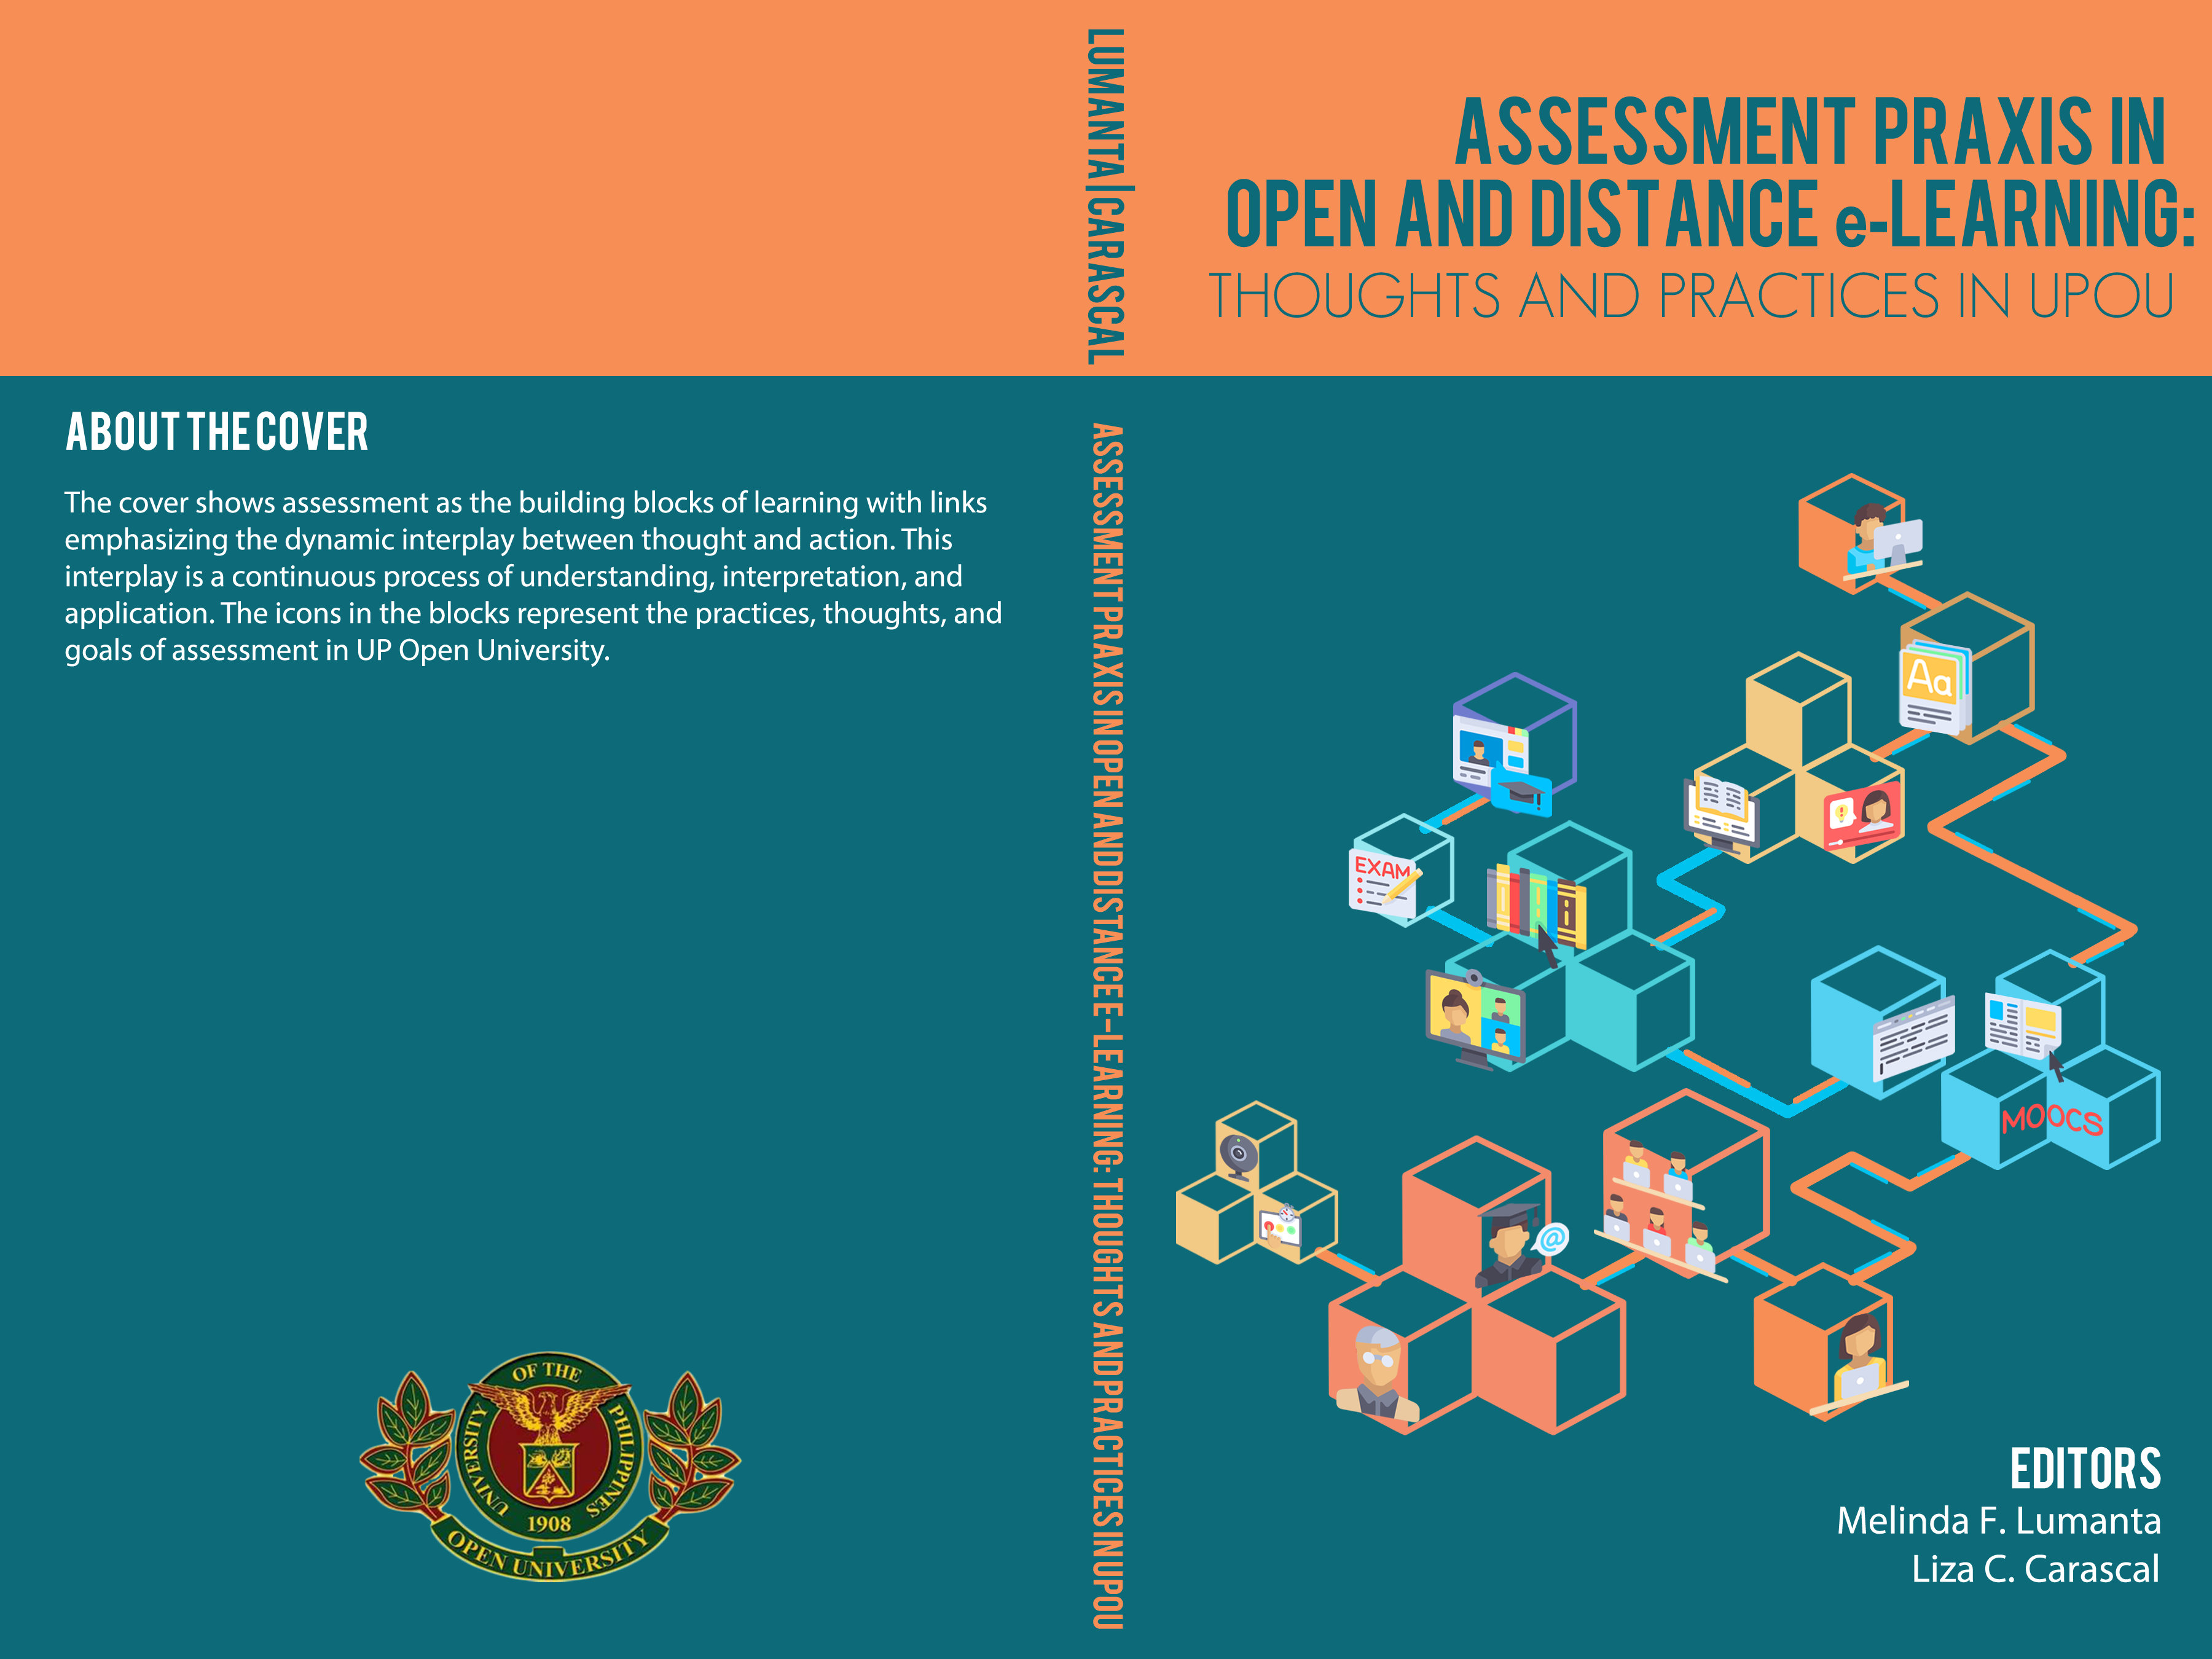 ASSESSMENT PRAXIS IN OPEN AND DISTANCE e-LEARNING: Thoughts and Practices in UPOU